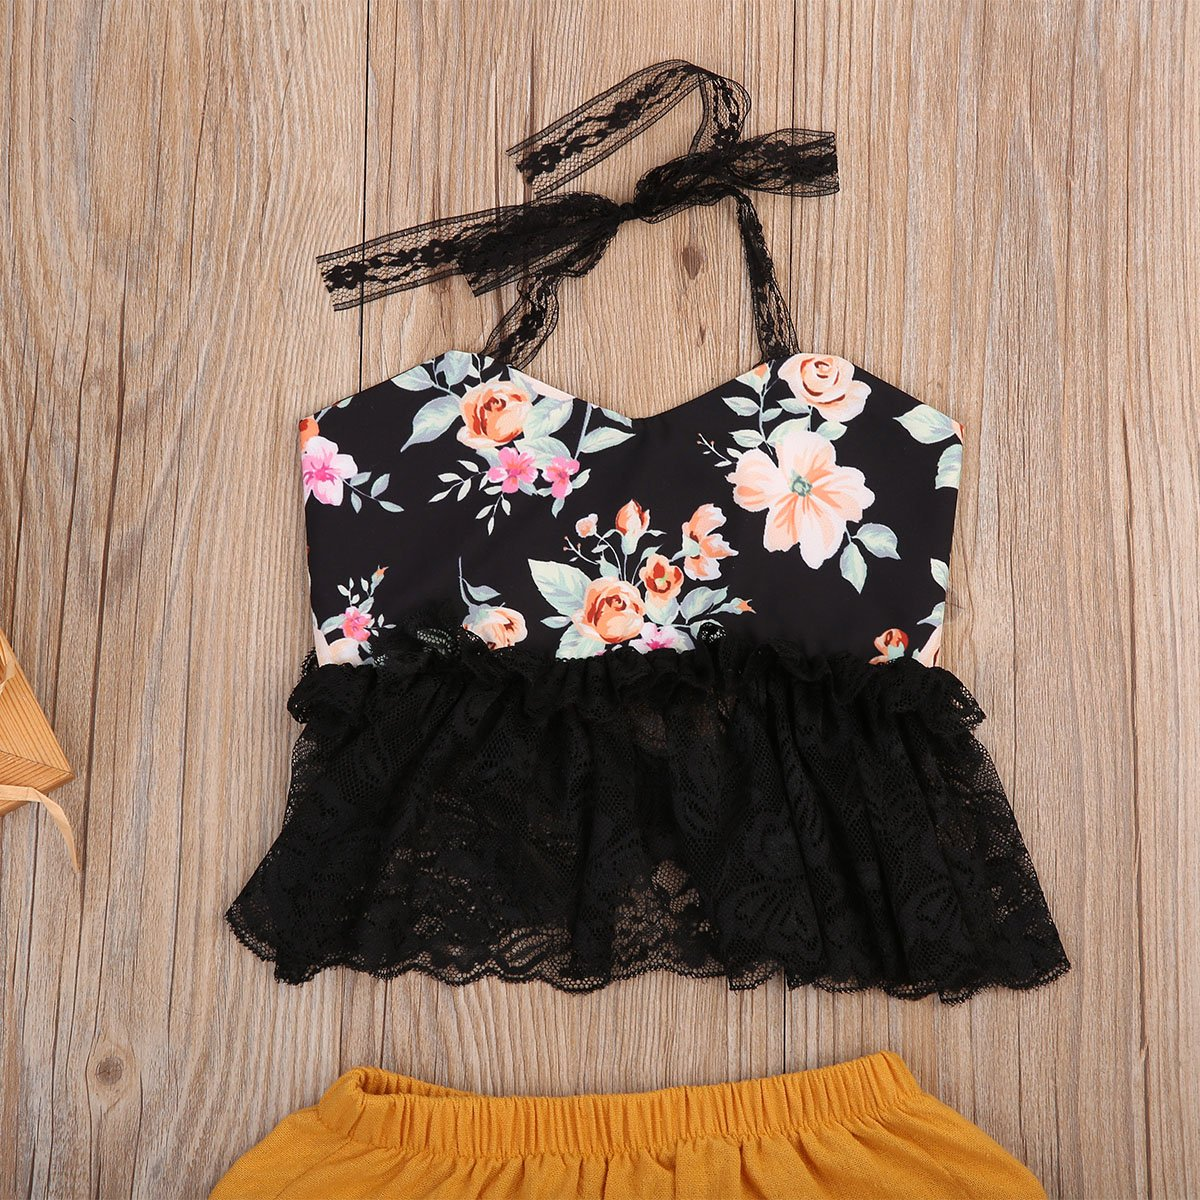 Toddler Infant Baby Girl Clothes Summer Backless Lace T-Shirt Floral Top Shorts Outfits